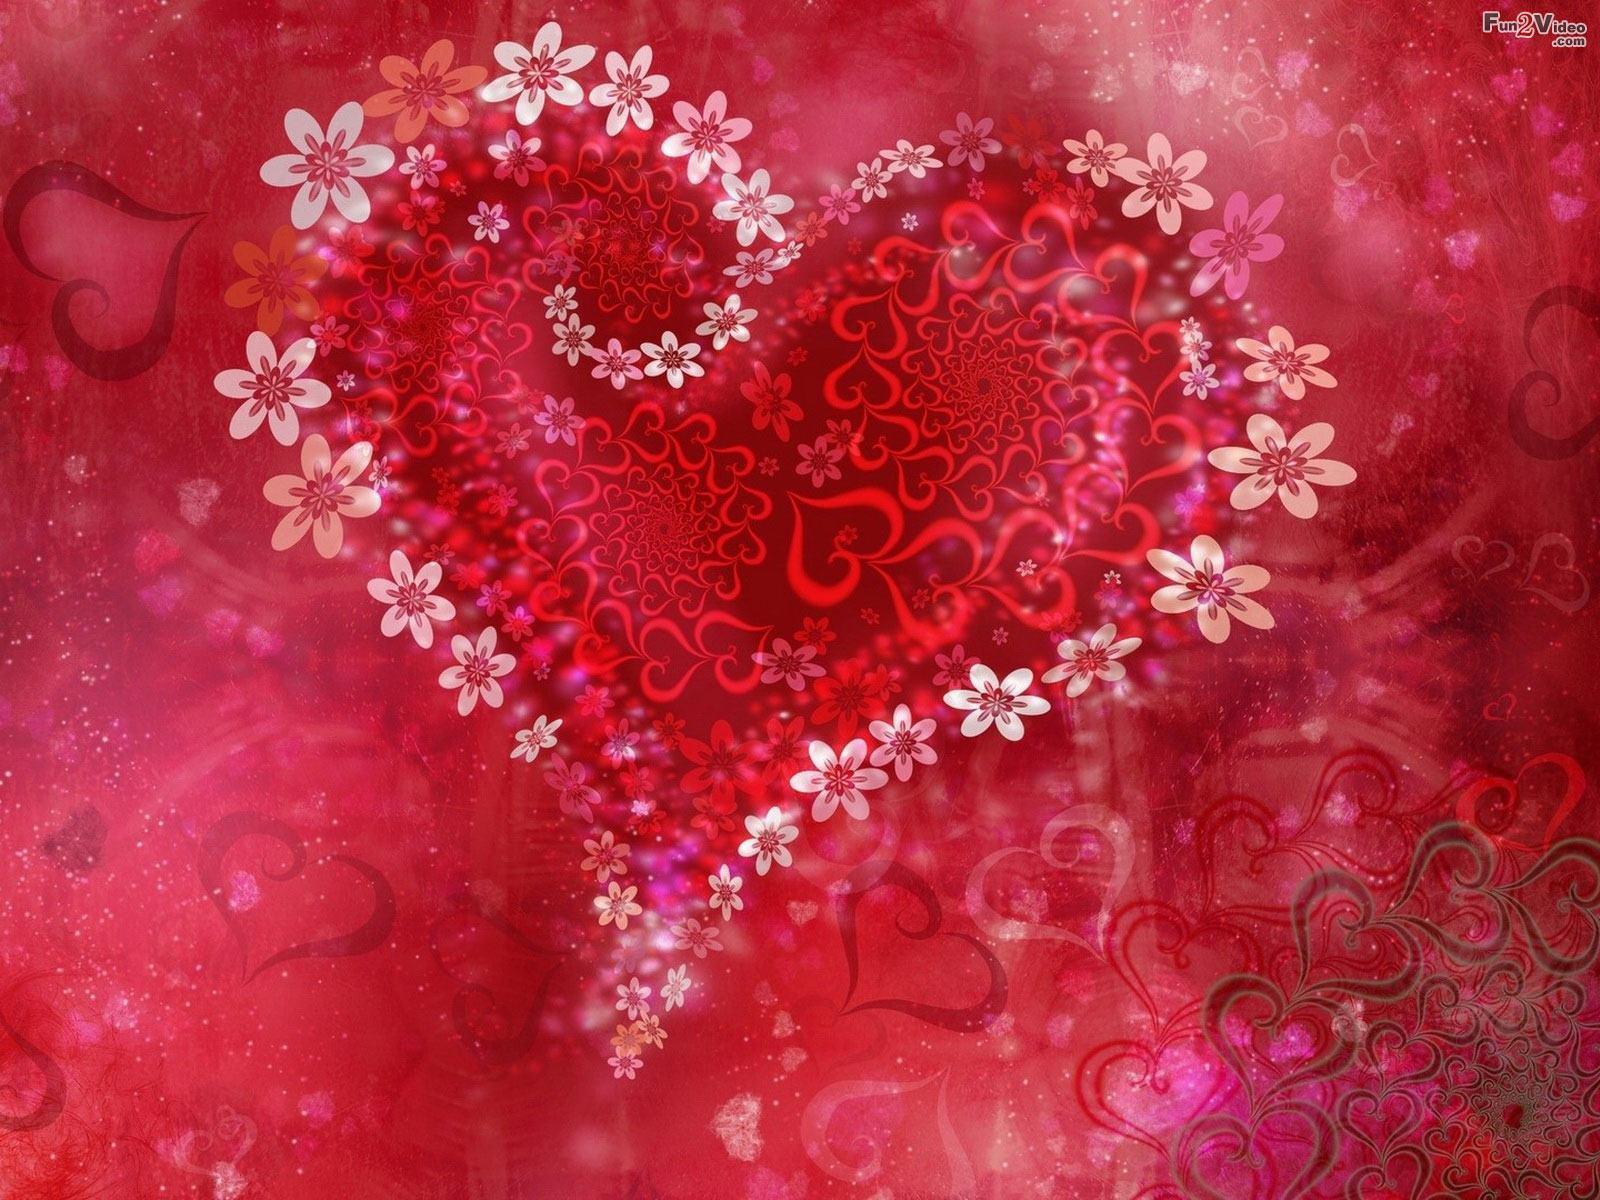 Free Valentine Backgrounds Desktop